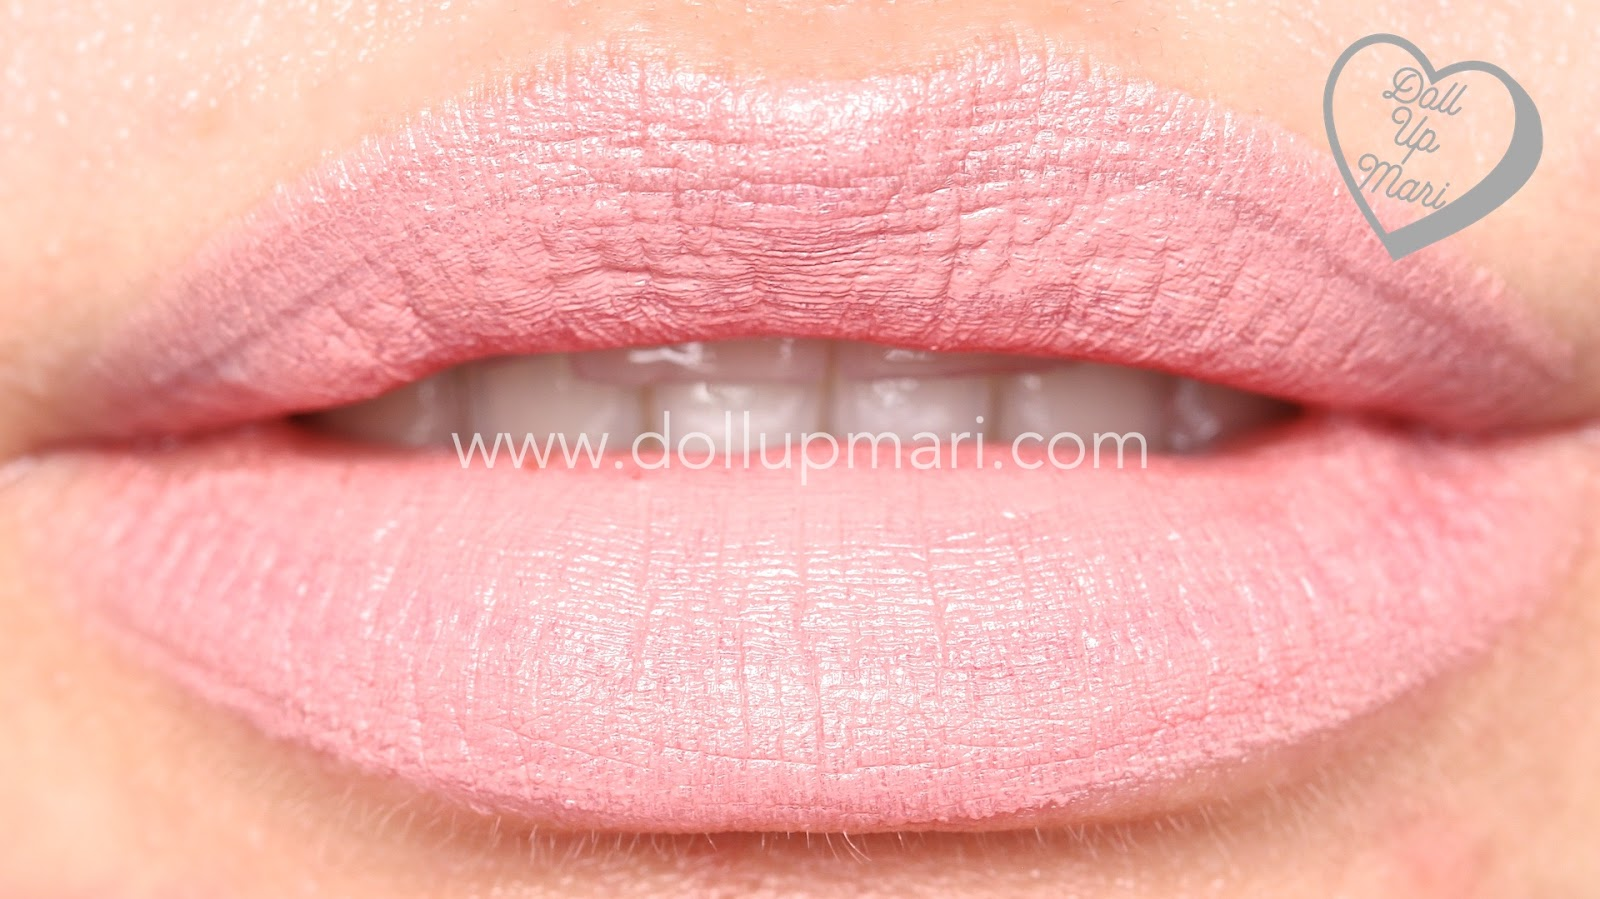 lip swatch of Blush Shade of AVON Perfectly Matte Lipstick